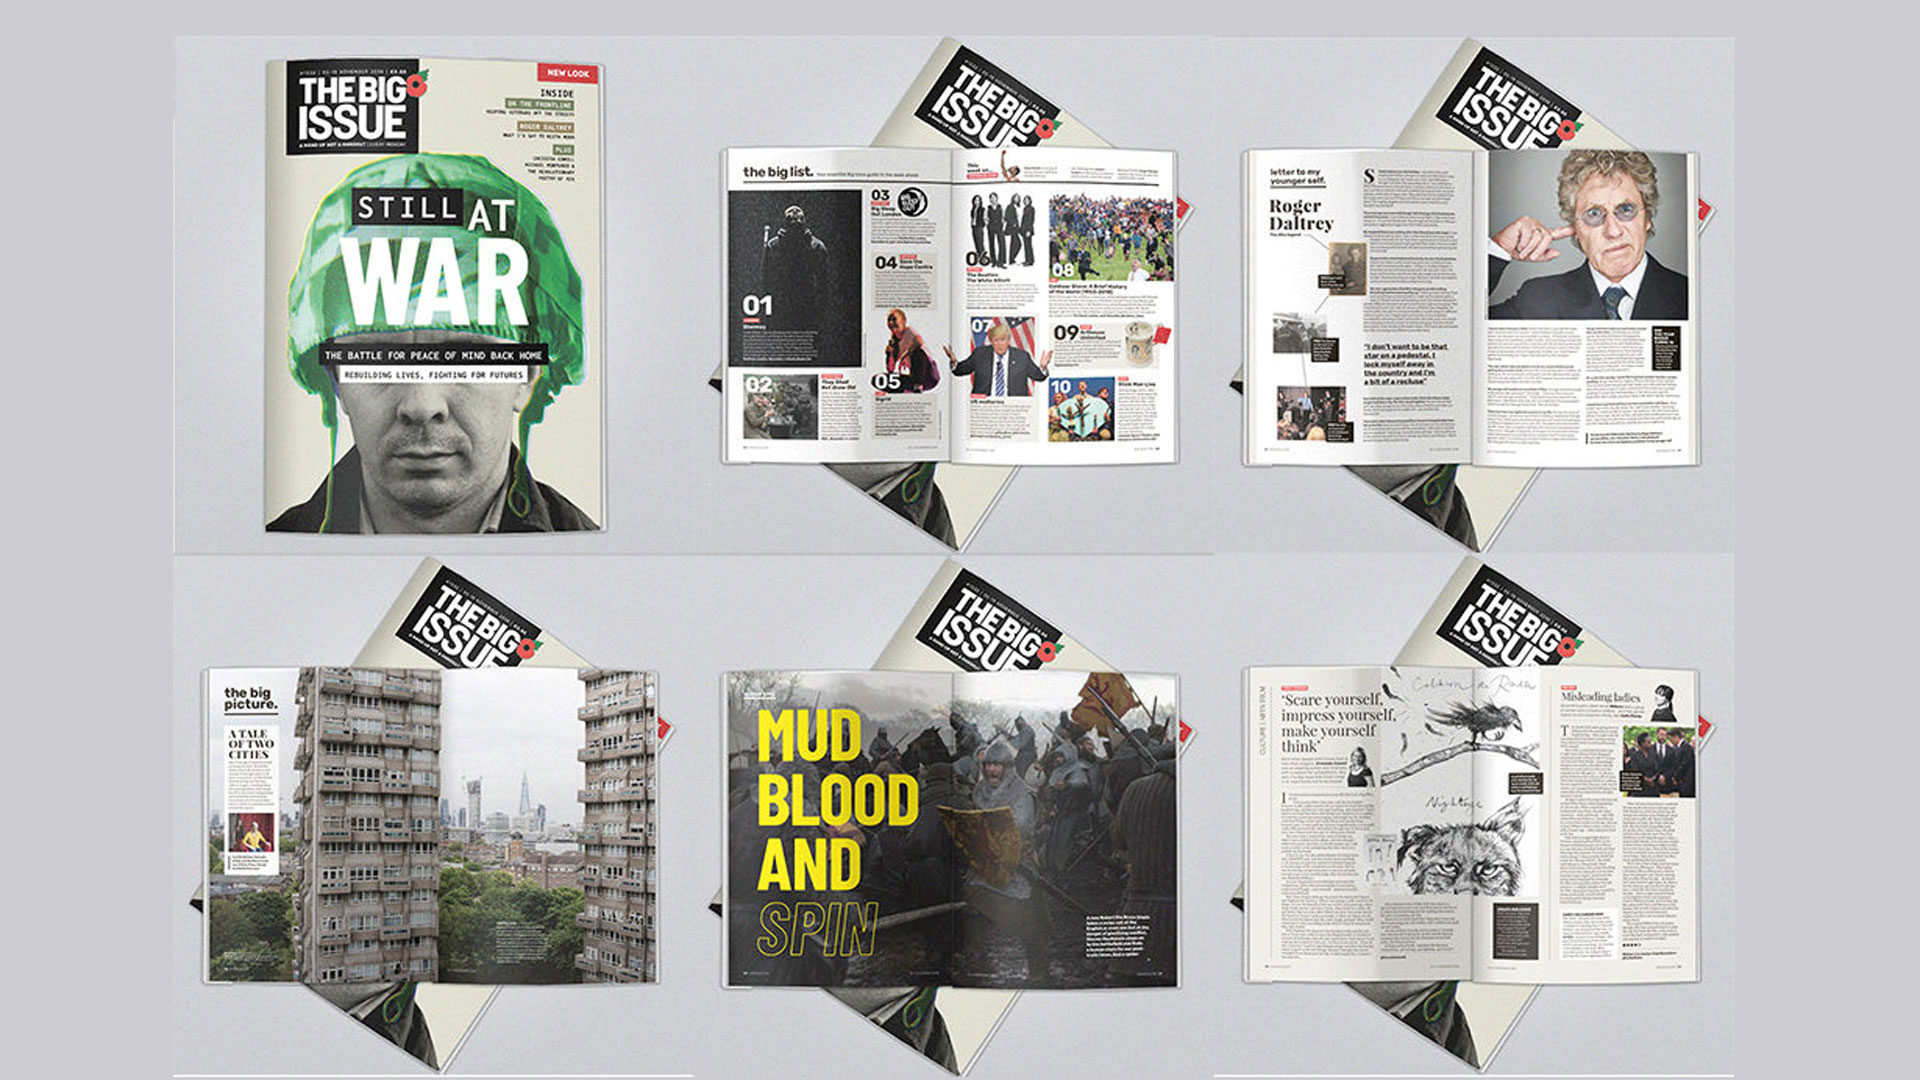 """Big Issue redesign: """"It's not just about the homeless – it's also about culture"""""""